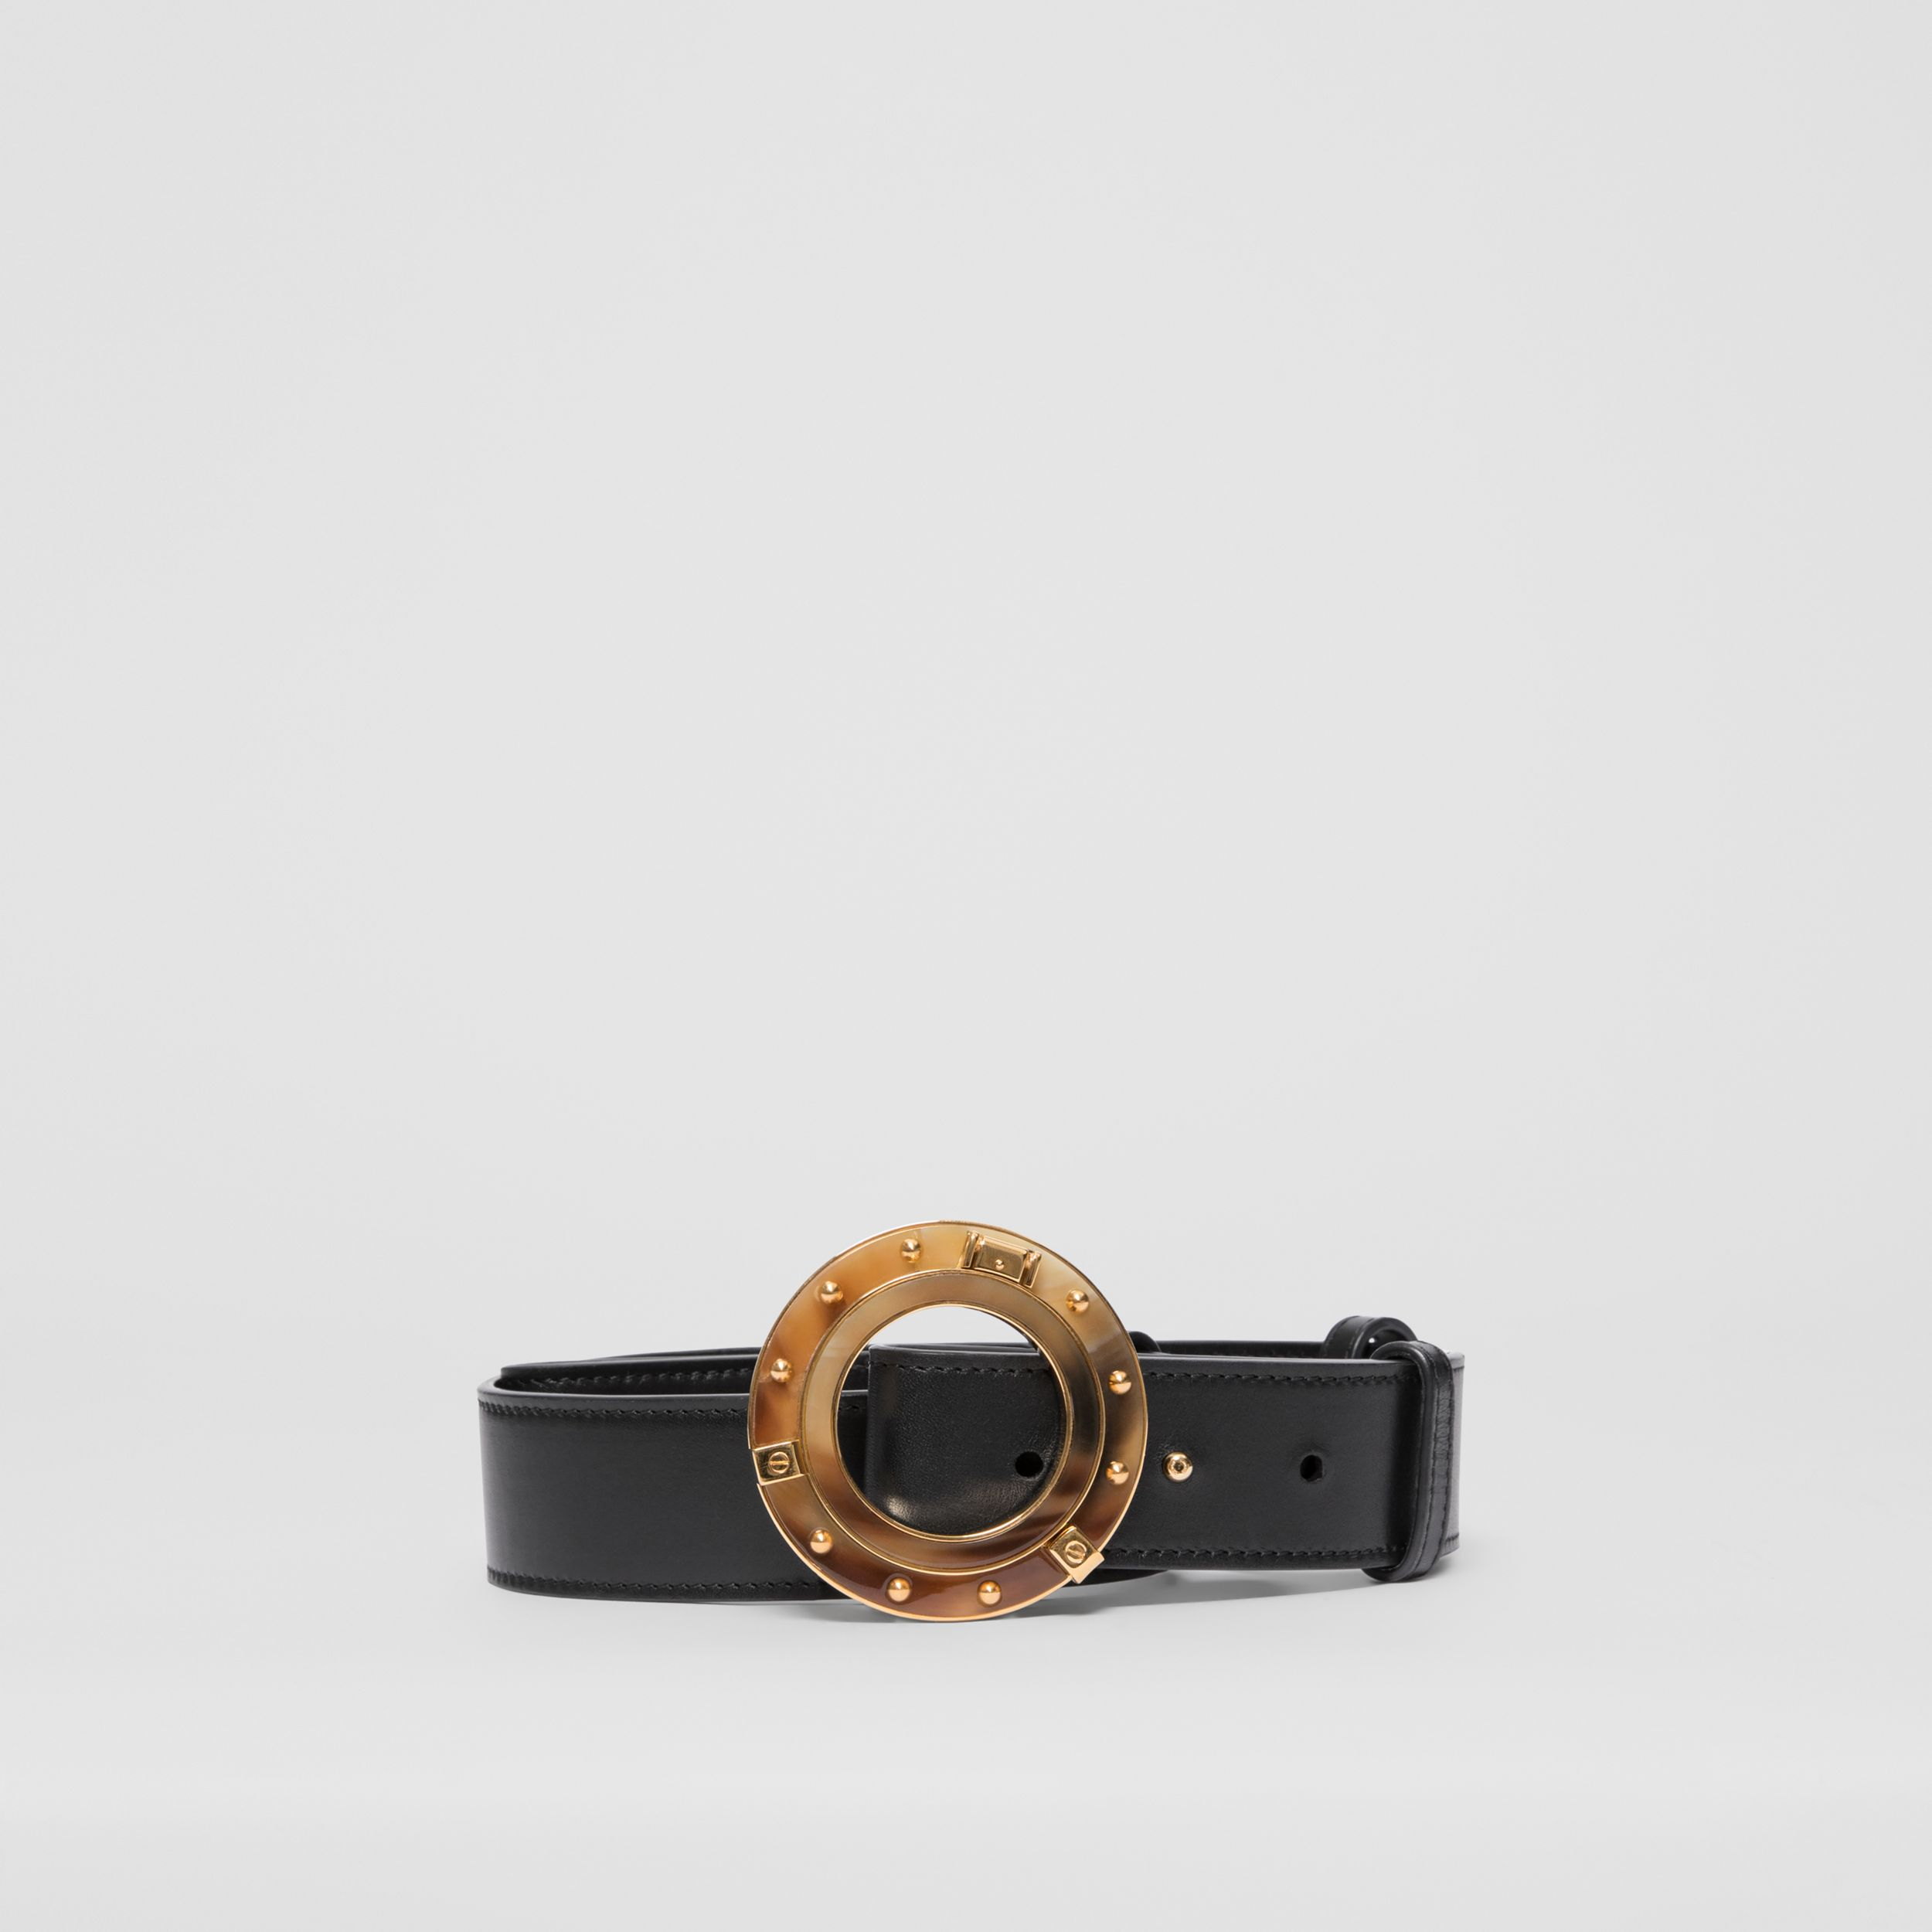 Porthole Buckle Leather Belt in Black | Burberry - 1